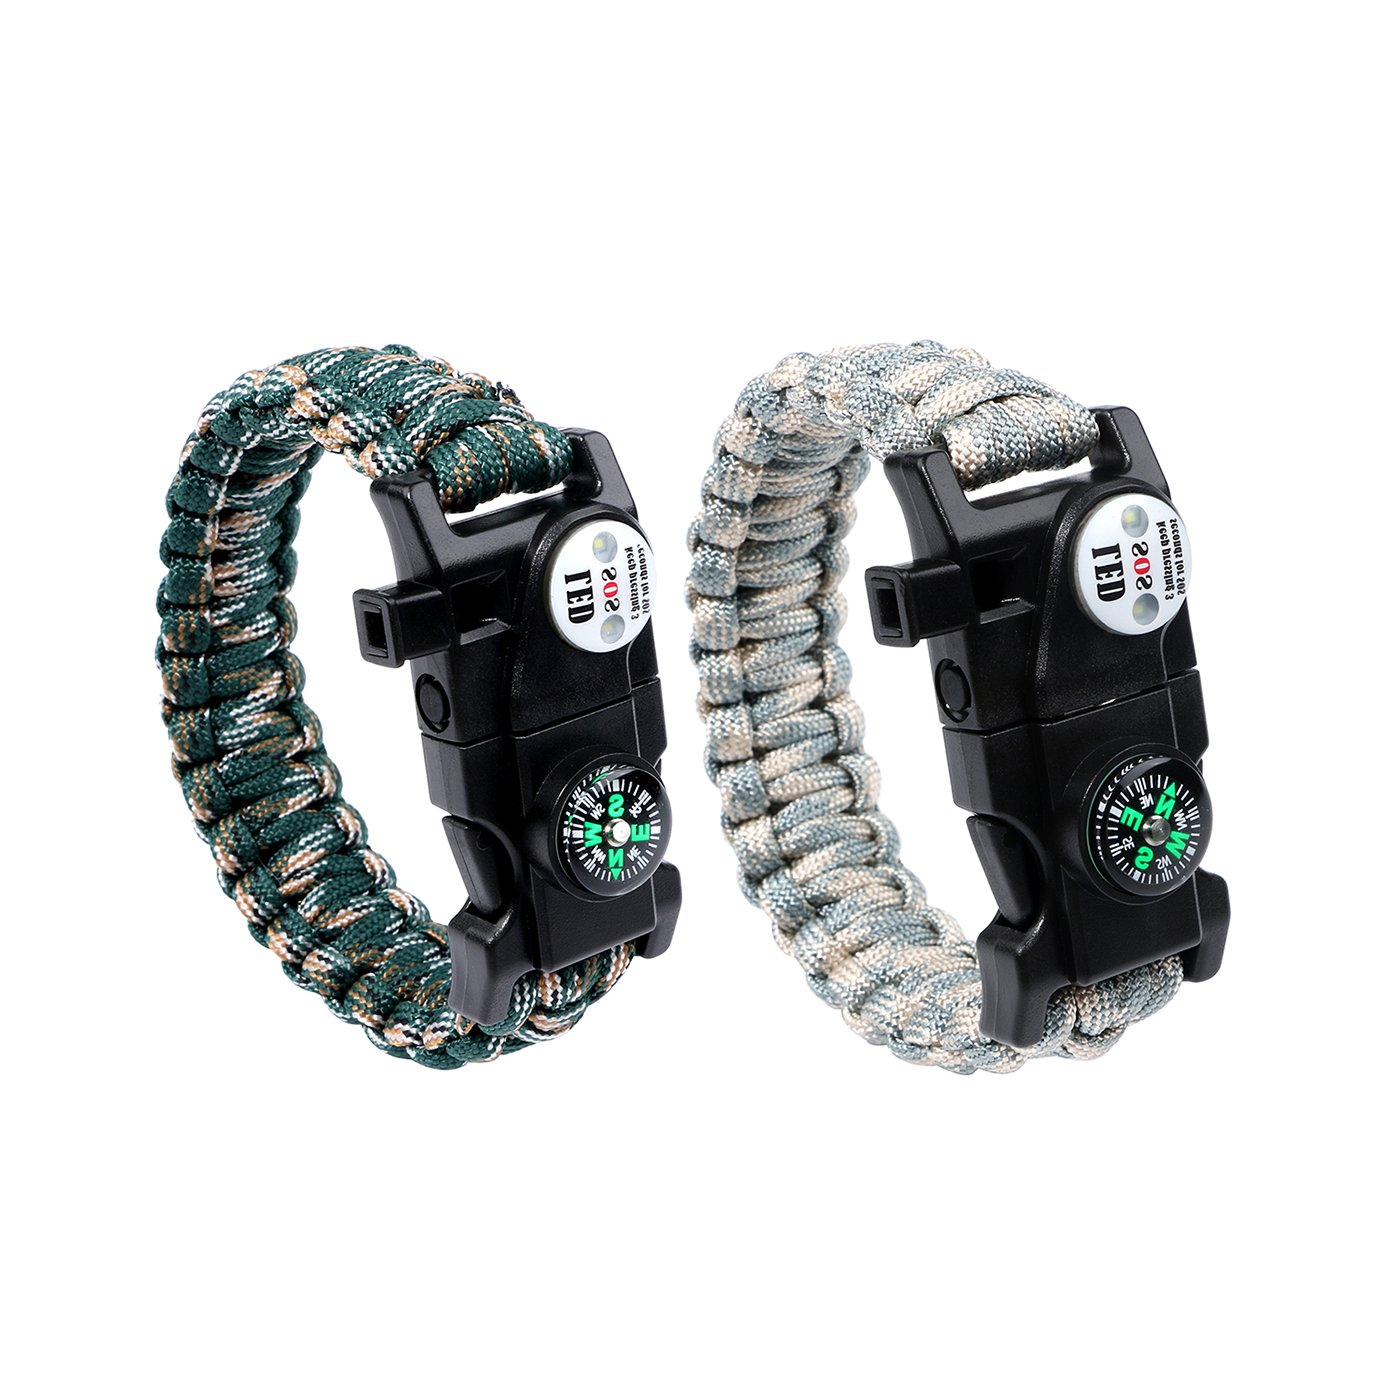 Tongshop 2 Pack Survival Bracelet Outdoors Survival Gear Kit with LED SOS Signal Compass Fire Starter and Whistle Emergency Survival Paracord Bracelet Kits